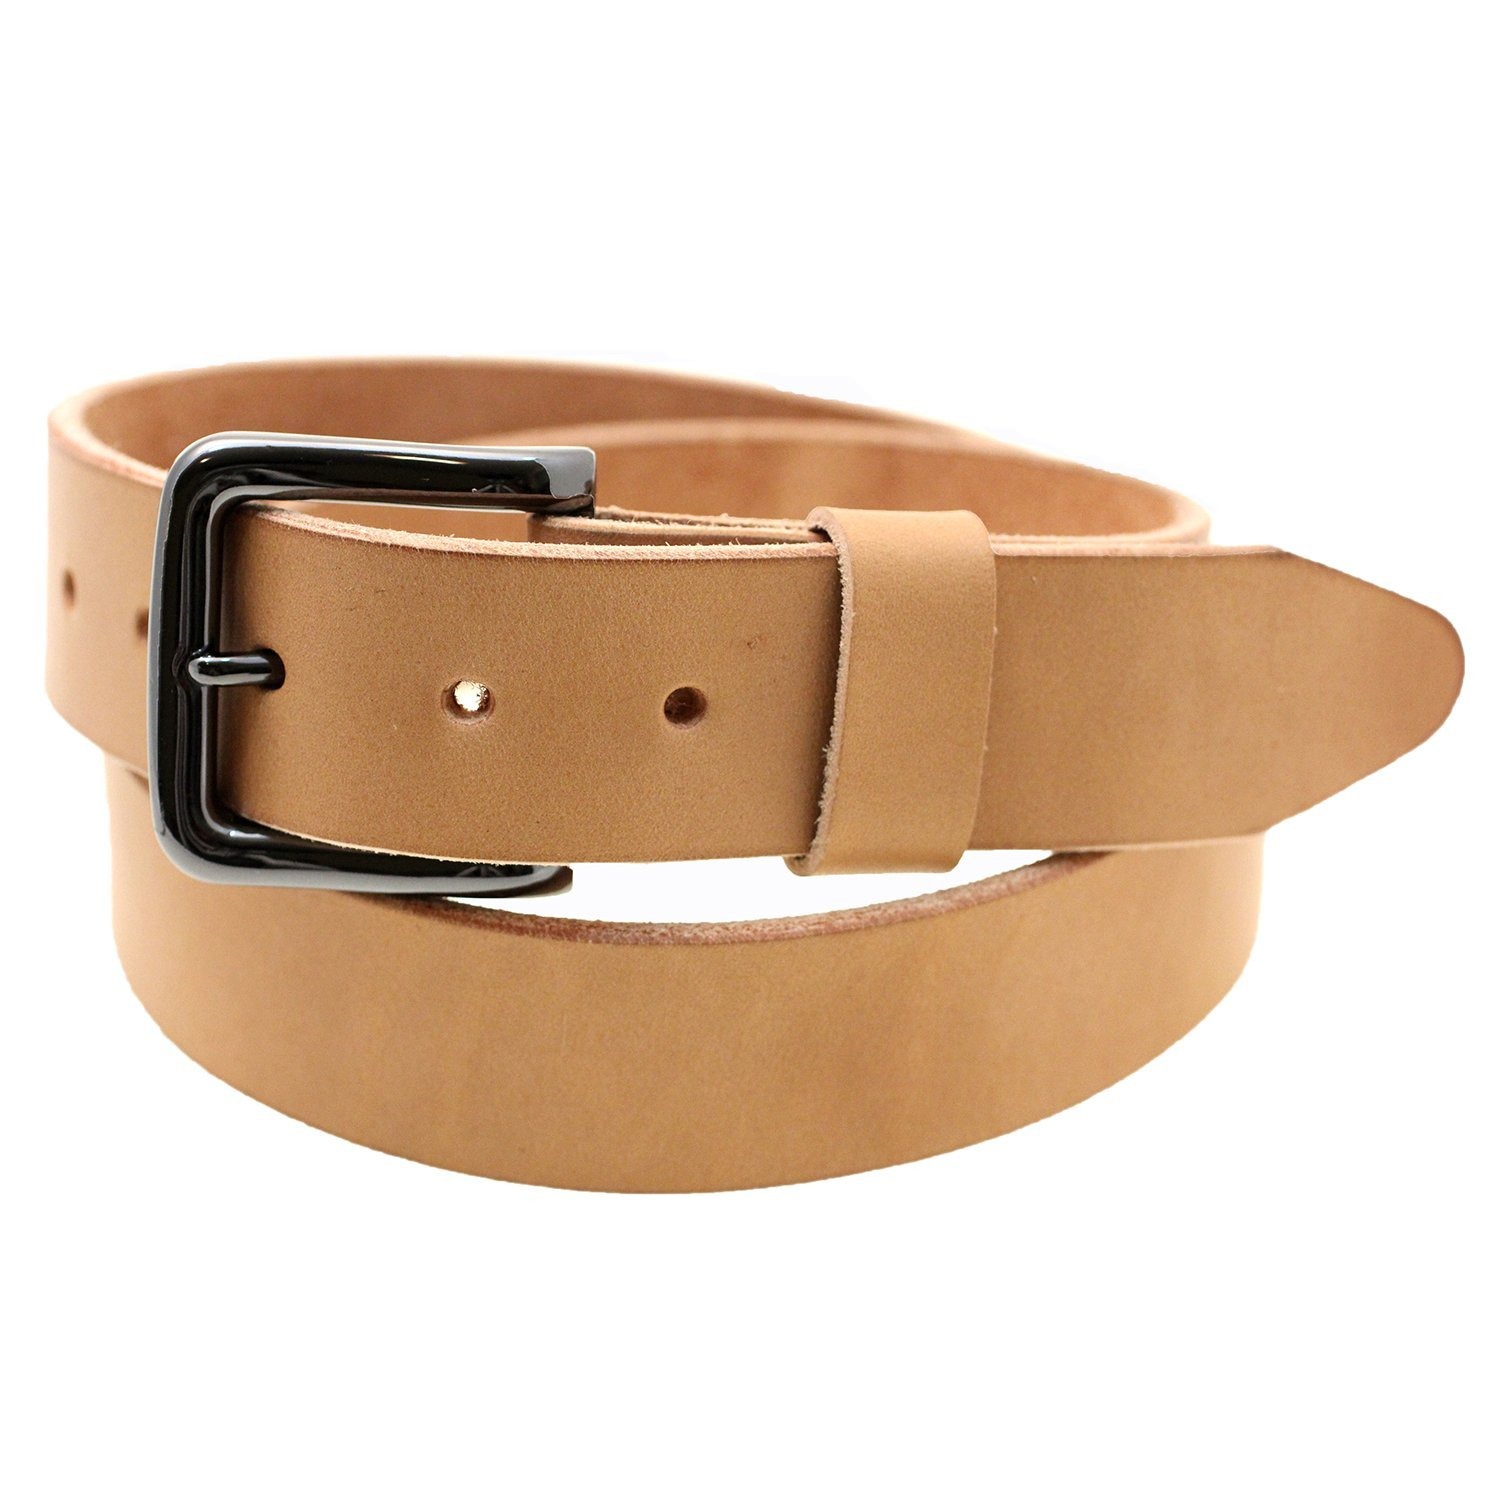 Orion Leather 1/2 Natural Tan Harness Leather Belt Raw Edge Made In ...